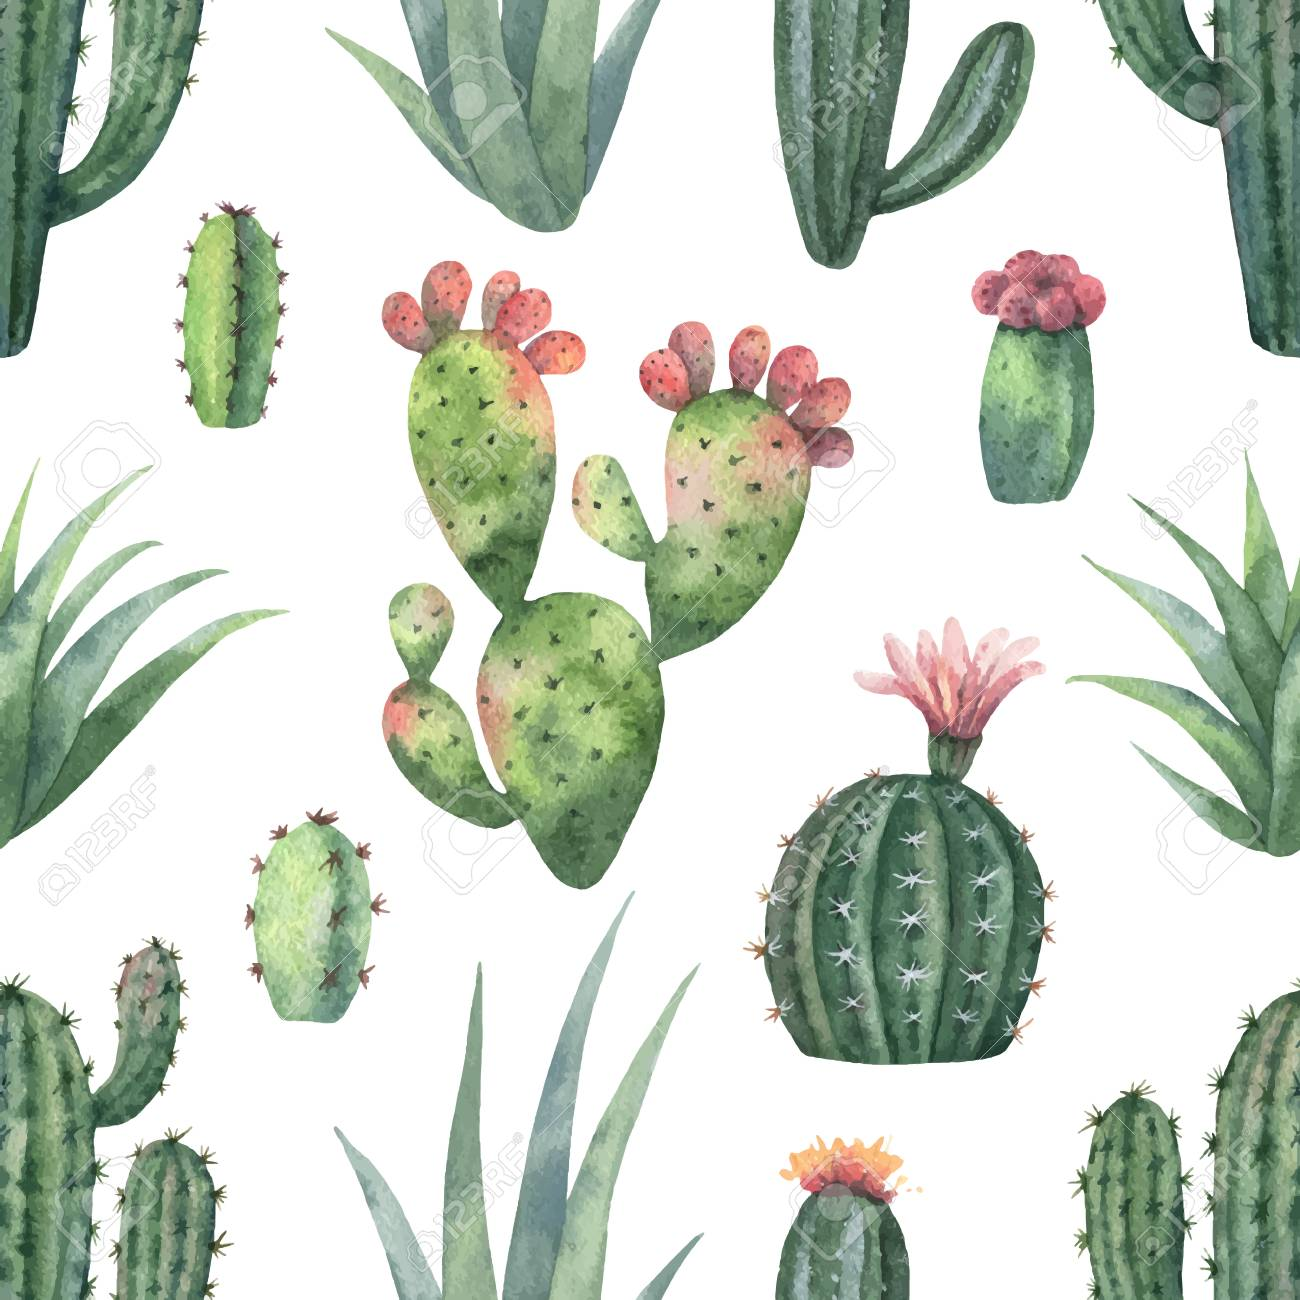 Watercolor Vector Seamless Pattern Of Cacti And Succulent Plants